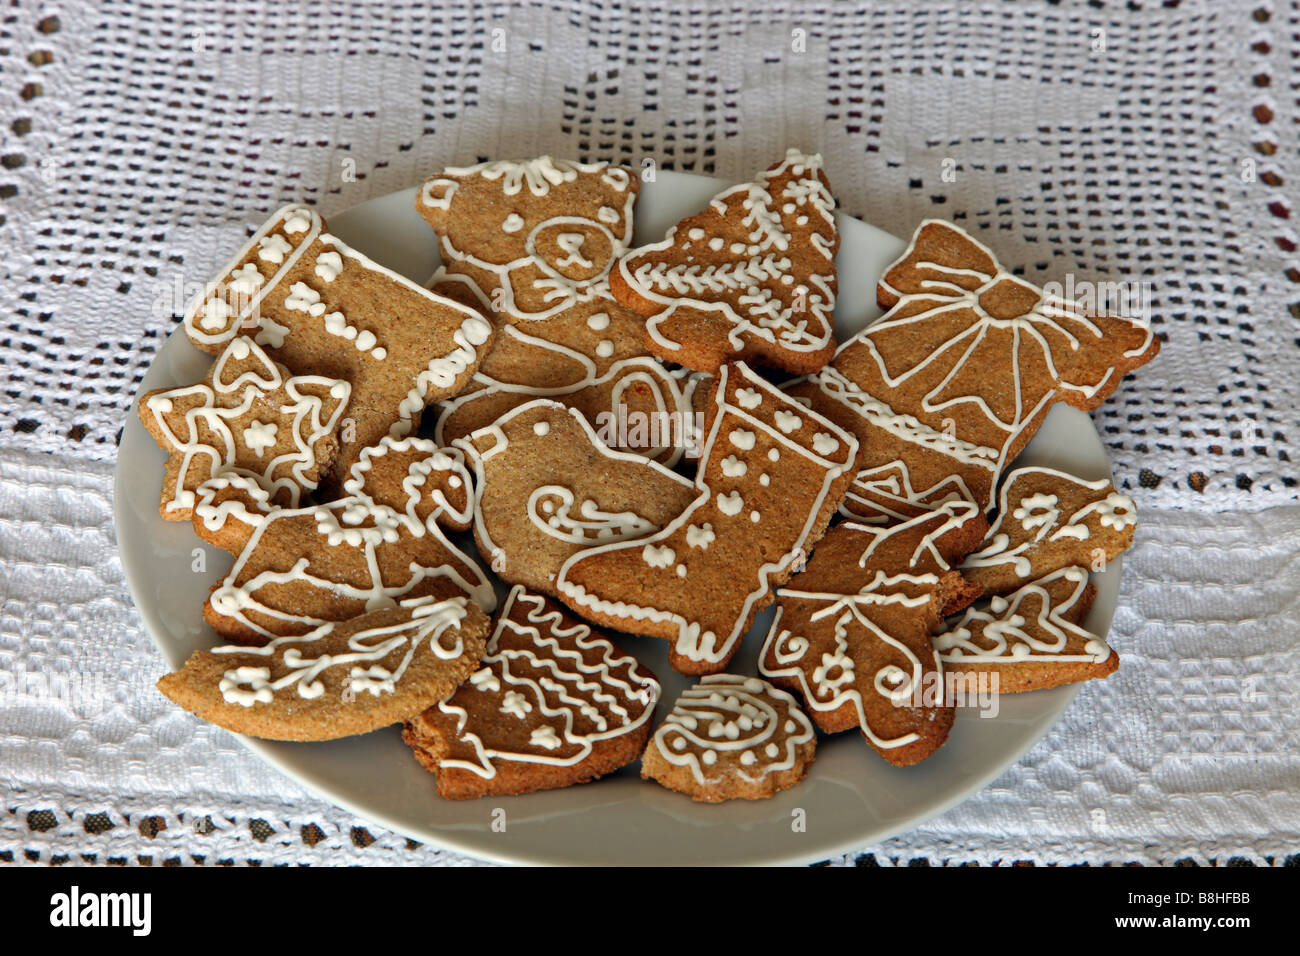 Hungarian Iced Christmas Gingerbread Cookies Stock Photo 22512879